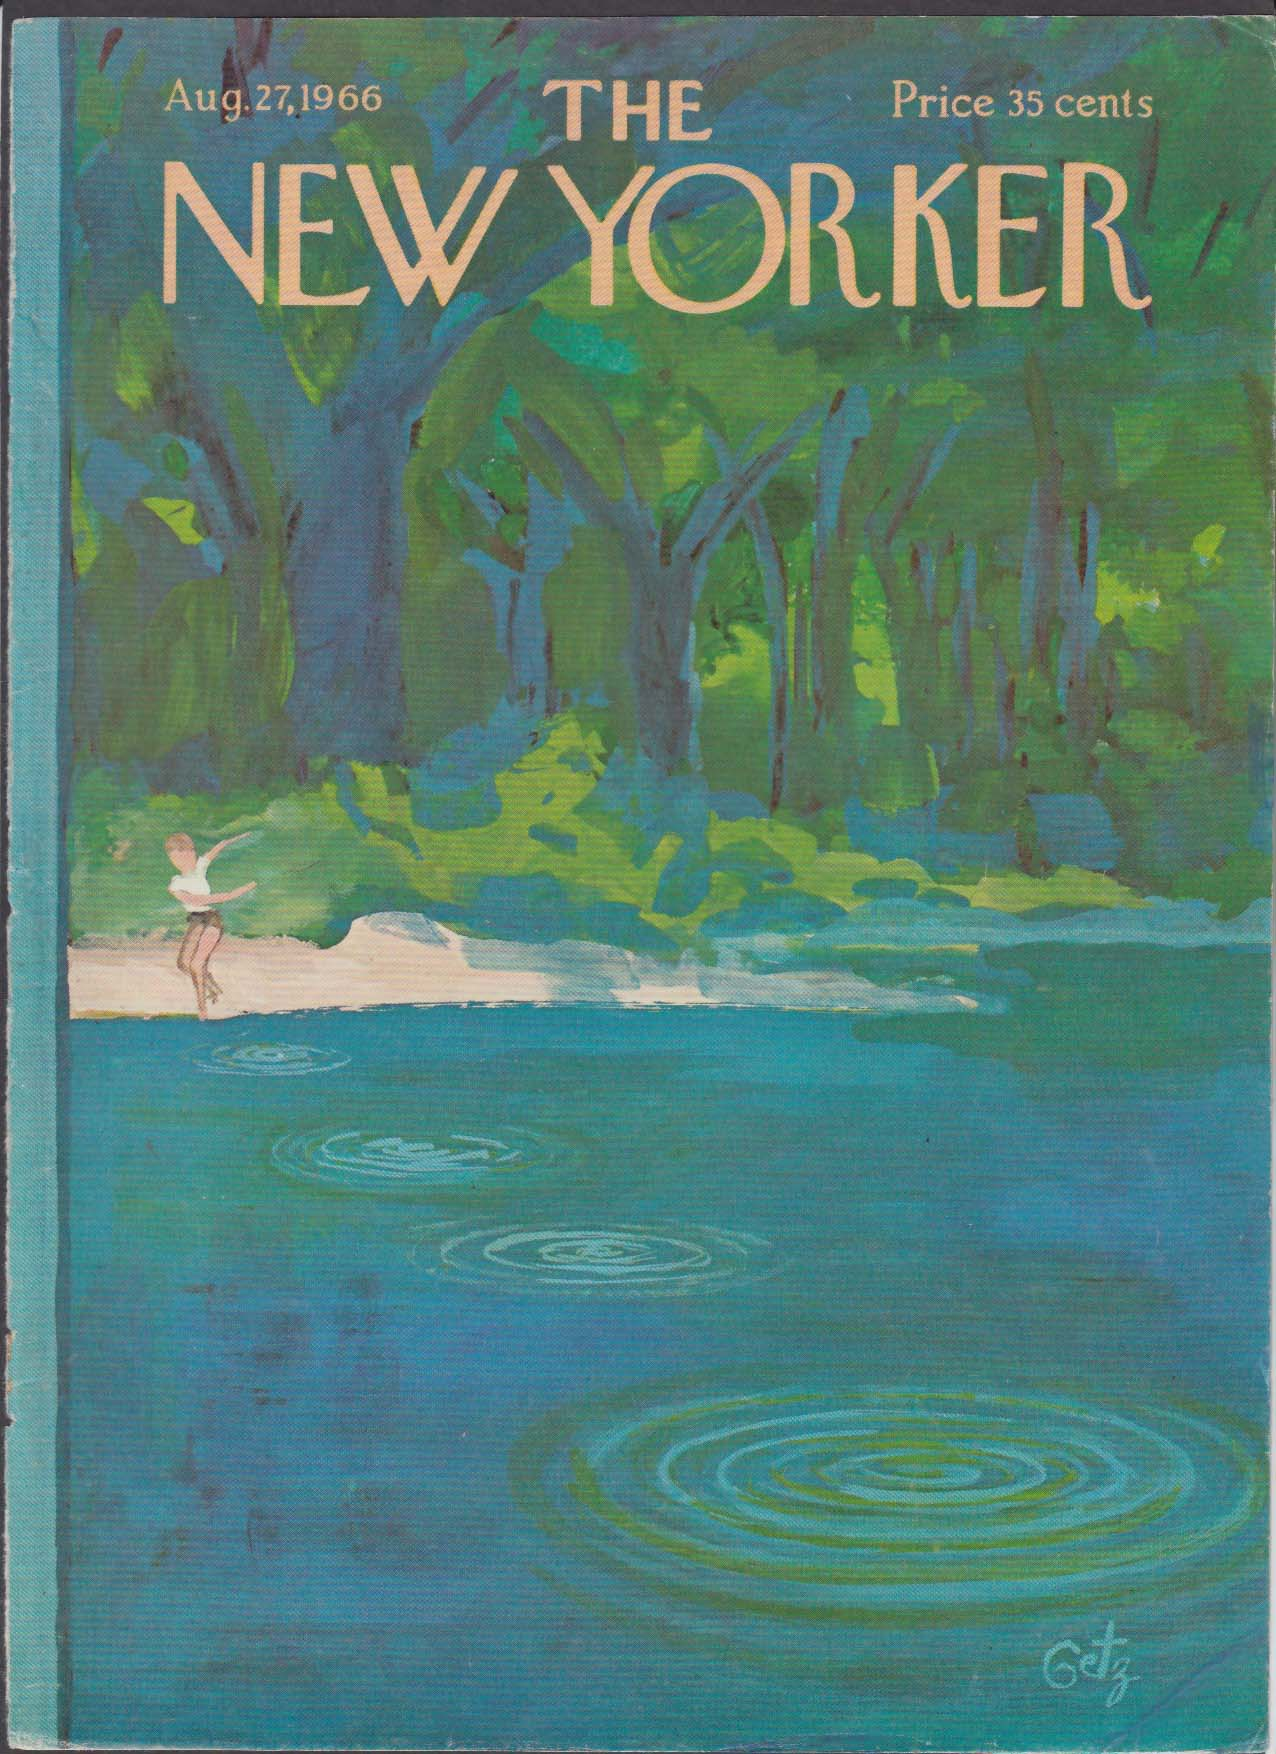 Image for New Yorker cover Getz child skipping a rock on pond in woods 8/27 1966